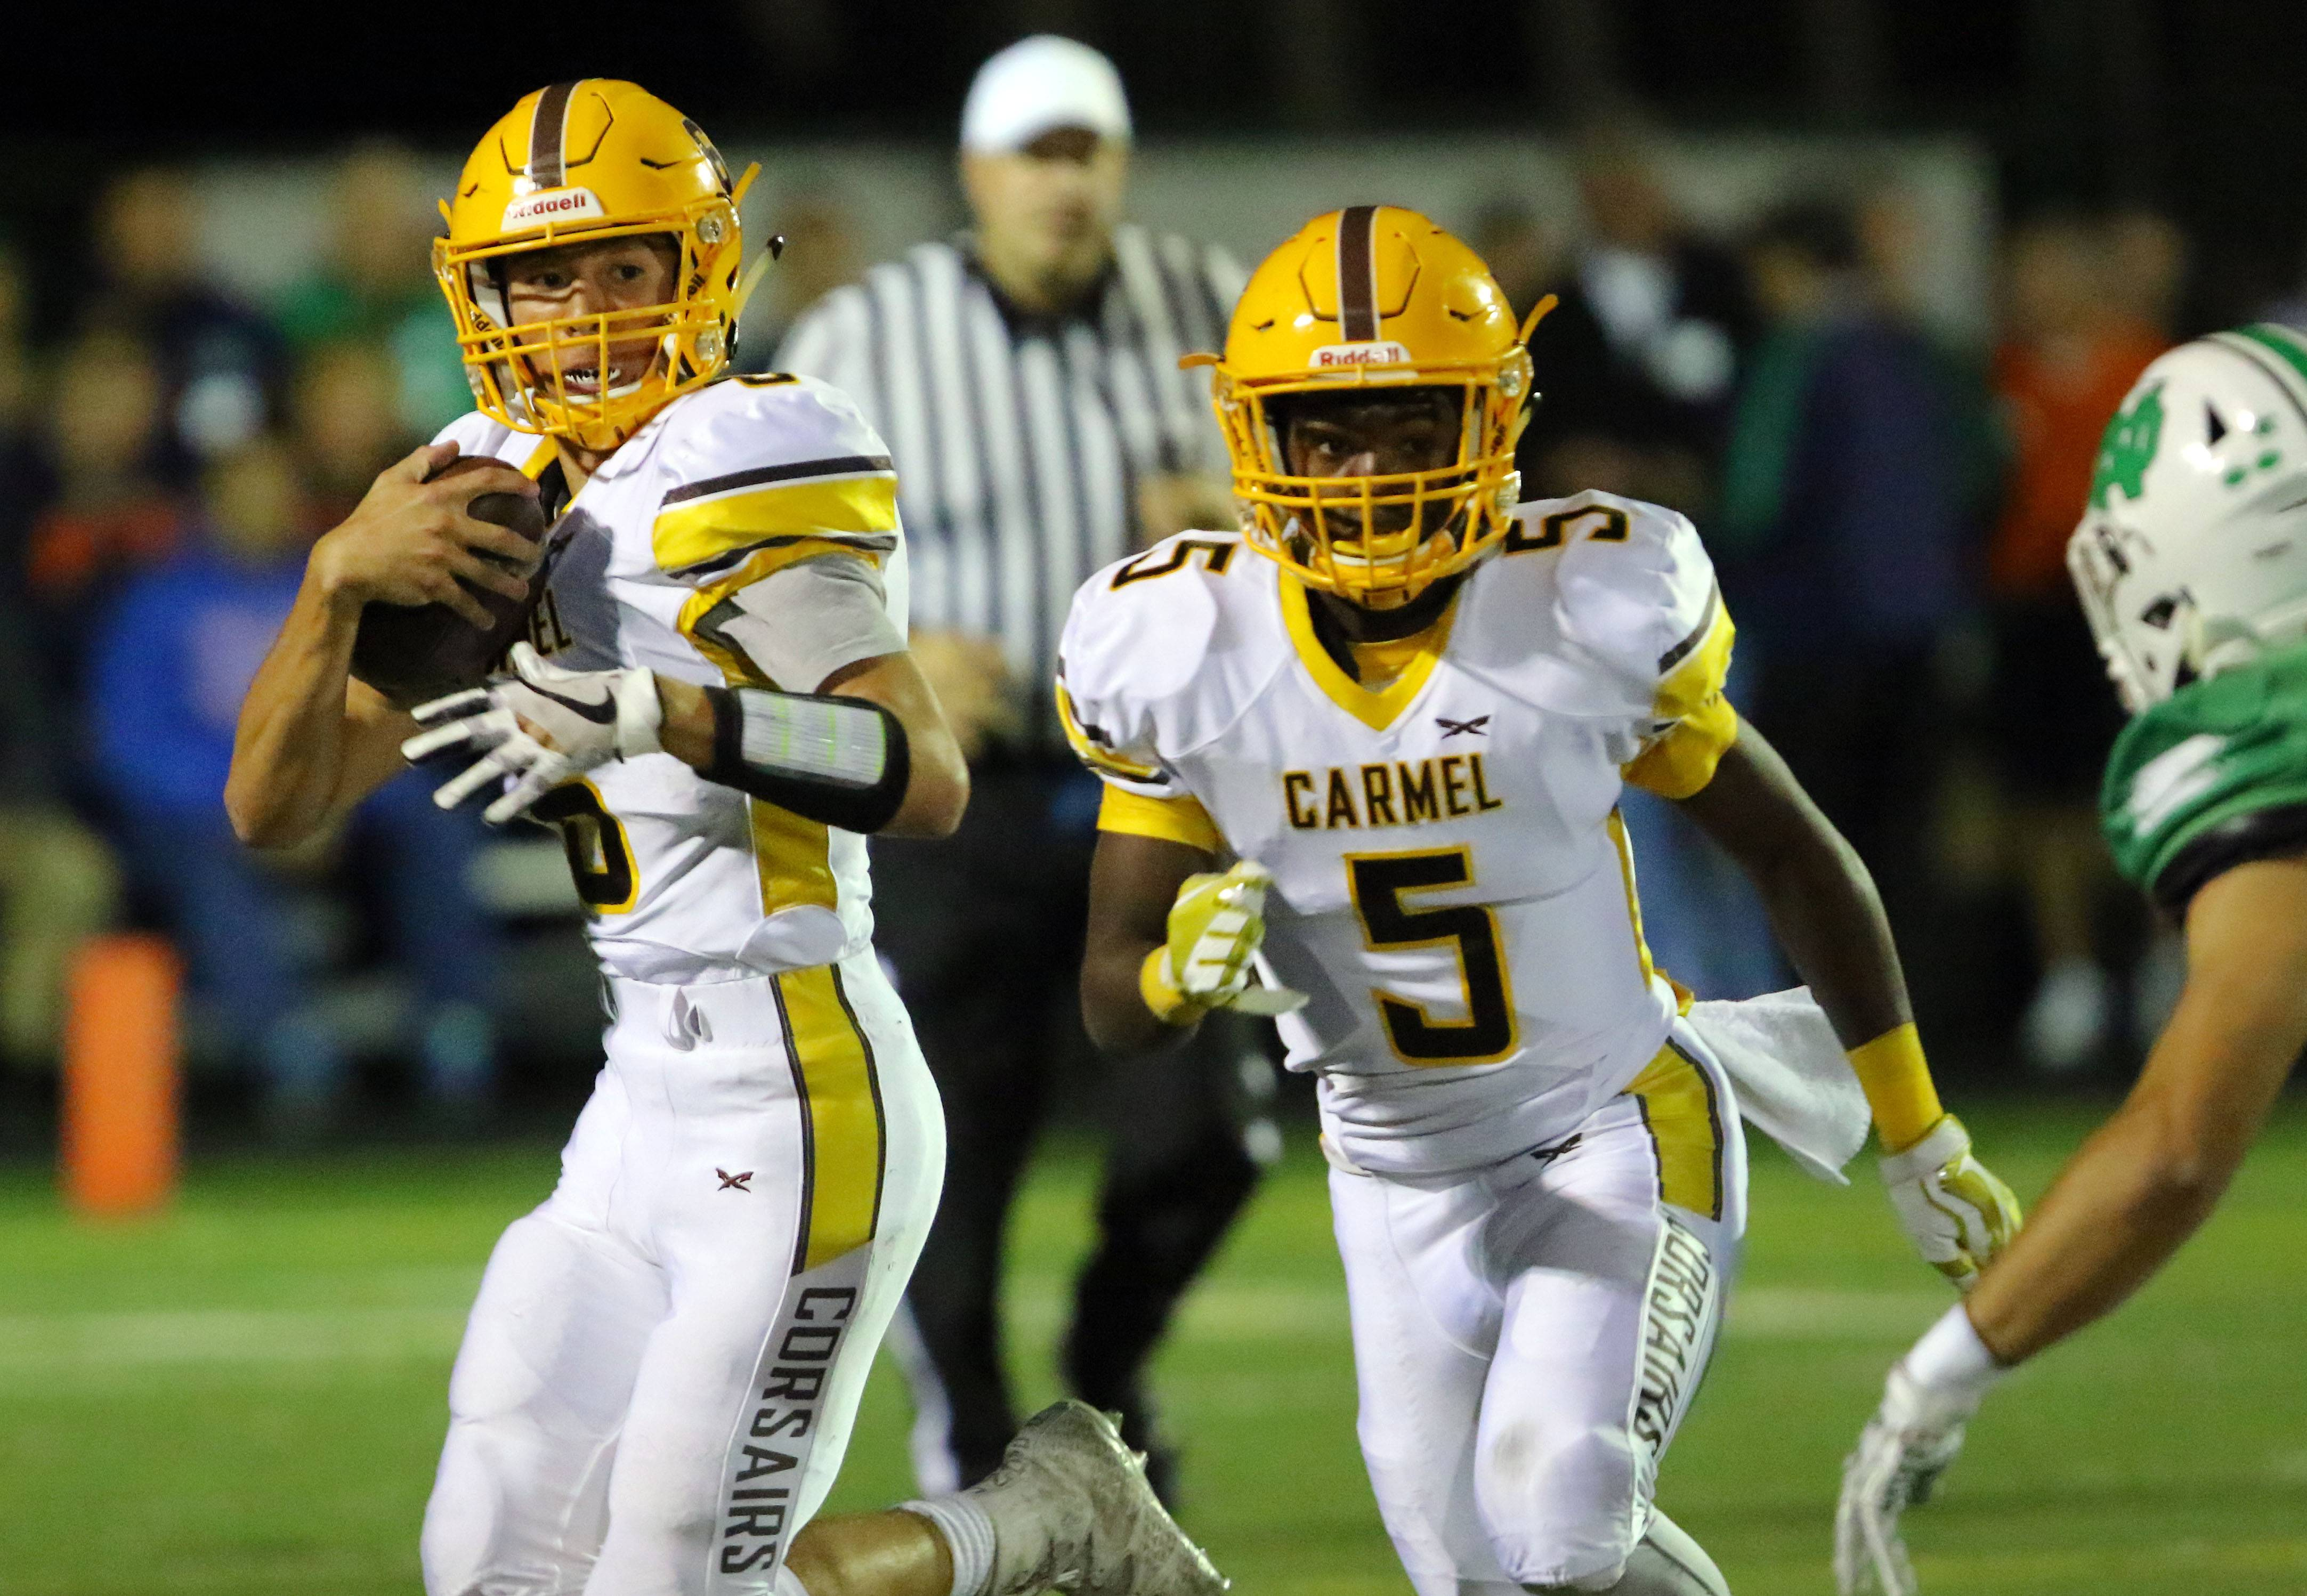 Carmel's Nick Fisher, left, returns a kickoff as Myles Tramill blocks against Notre Dame on Friday night in Niles.